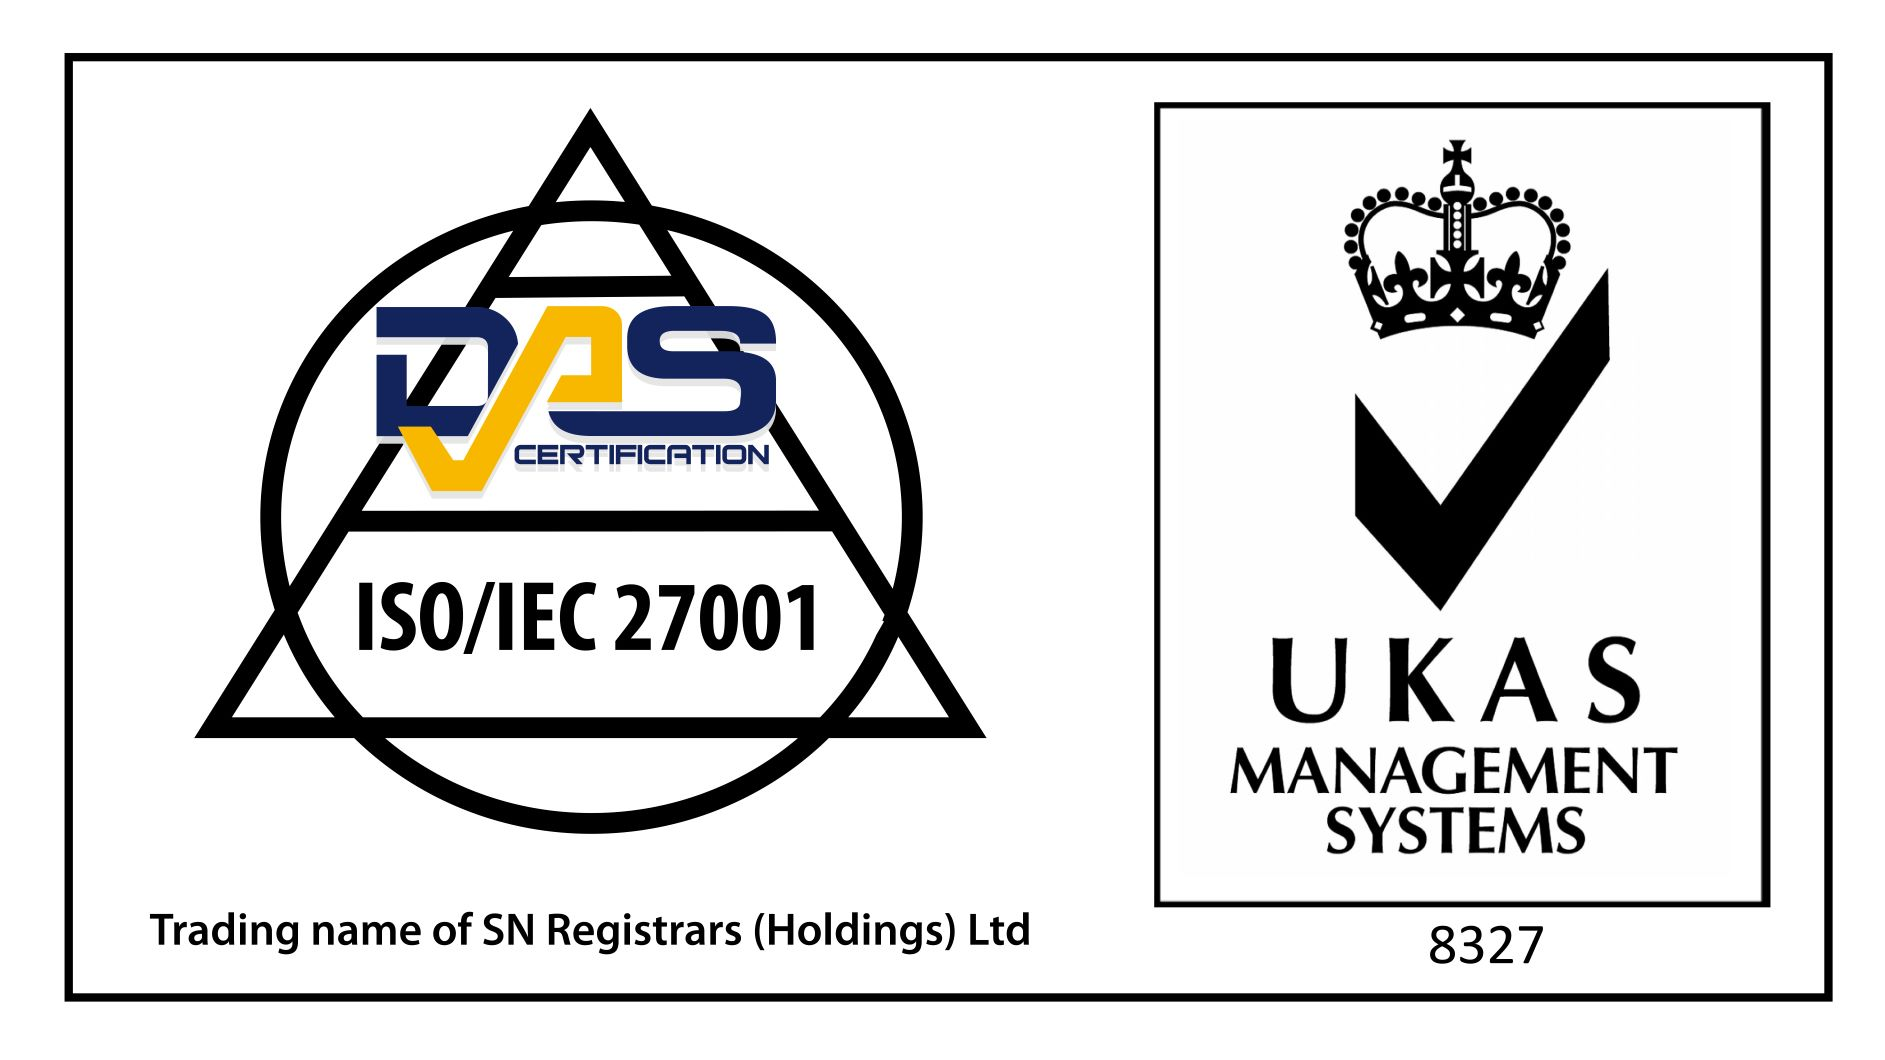 DAS Ukas Certification